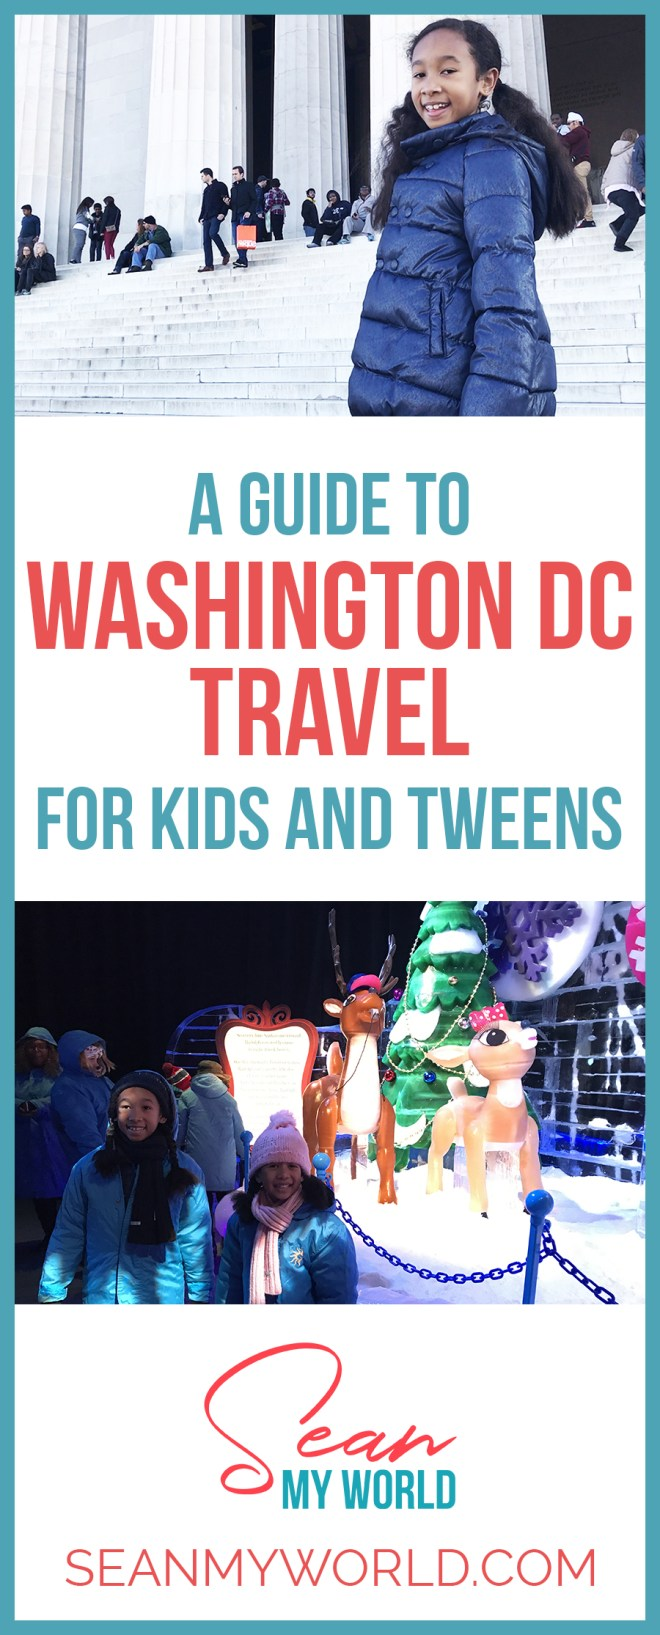 I'm excited to share with you my Washington DC travel vlog! My family and I just took a road trip from NY to DC, and this is my Washington DC travel diary.